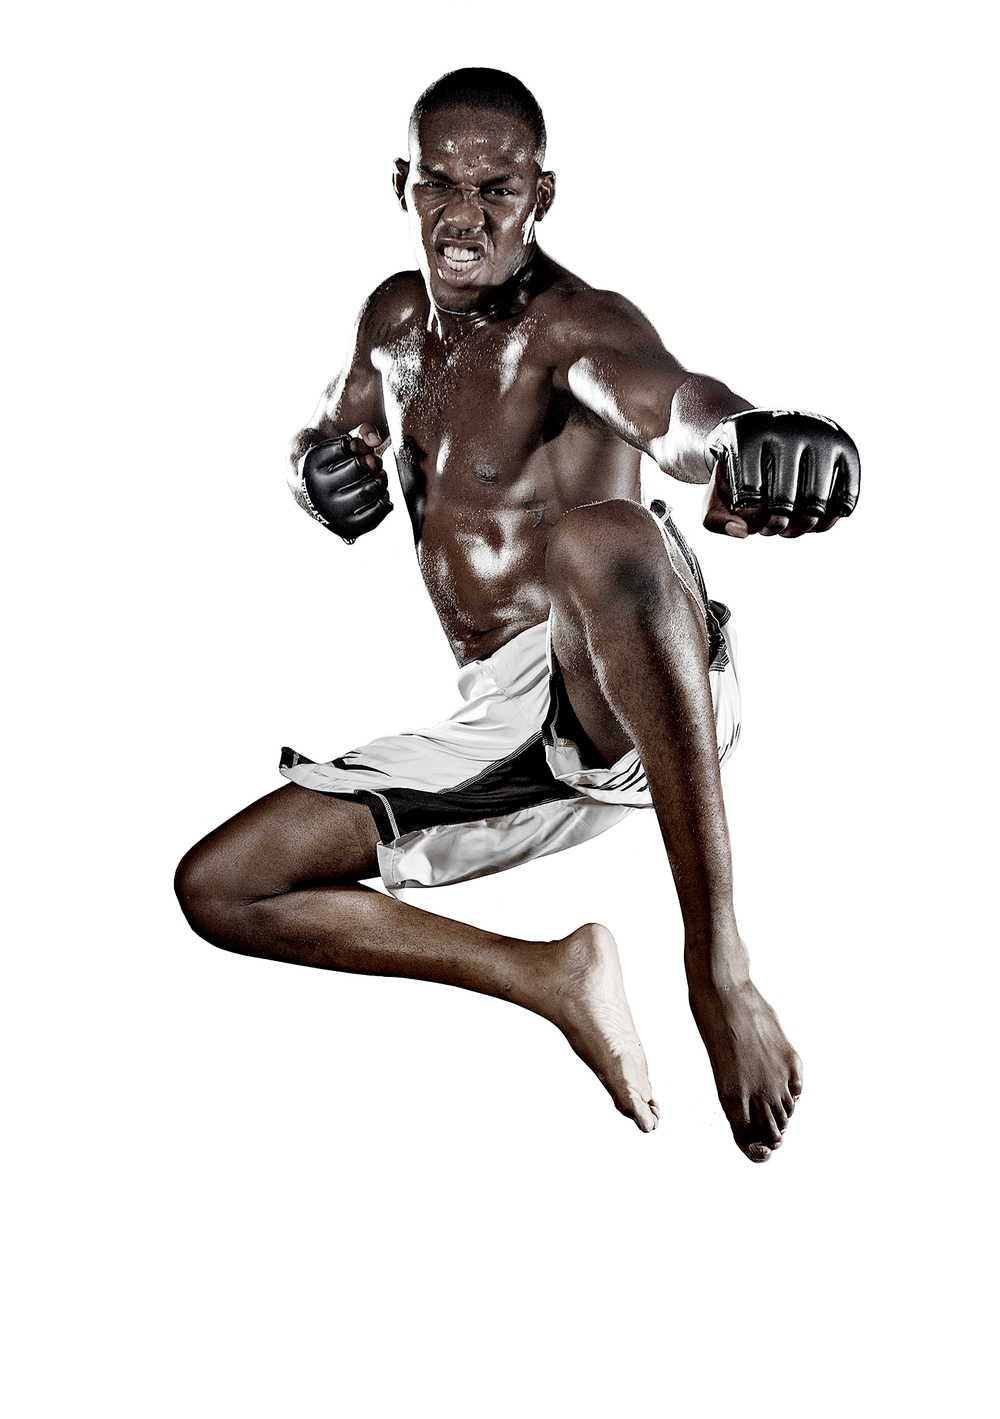 jon bones jones / everlast unleashed